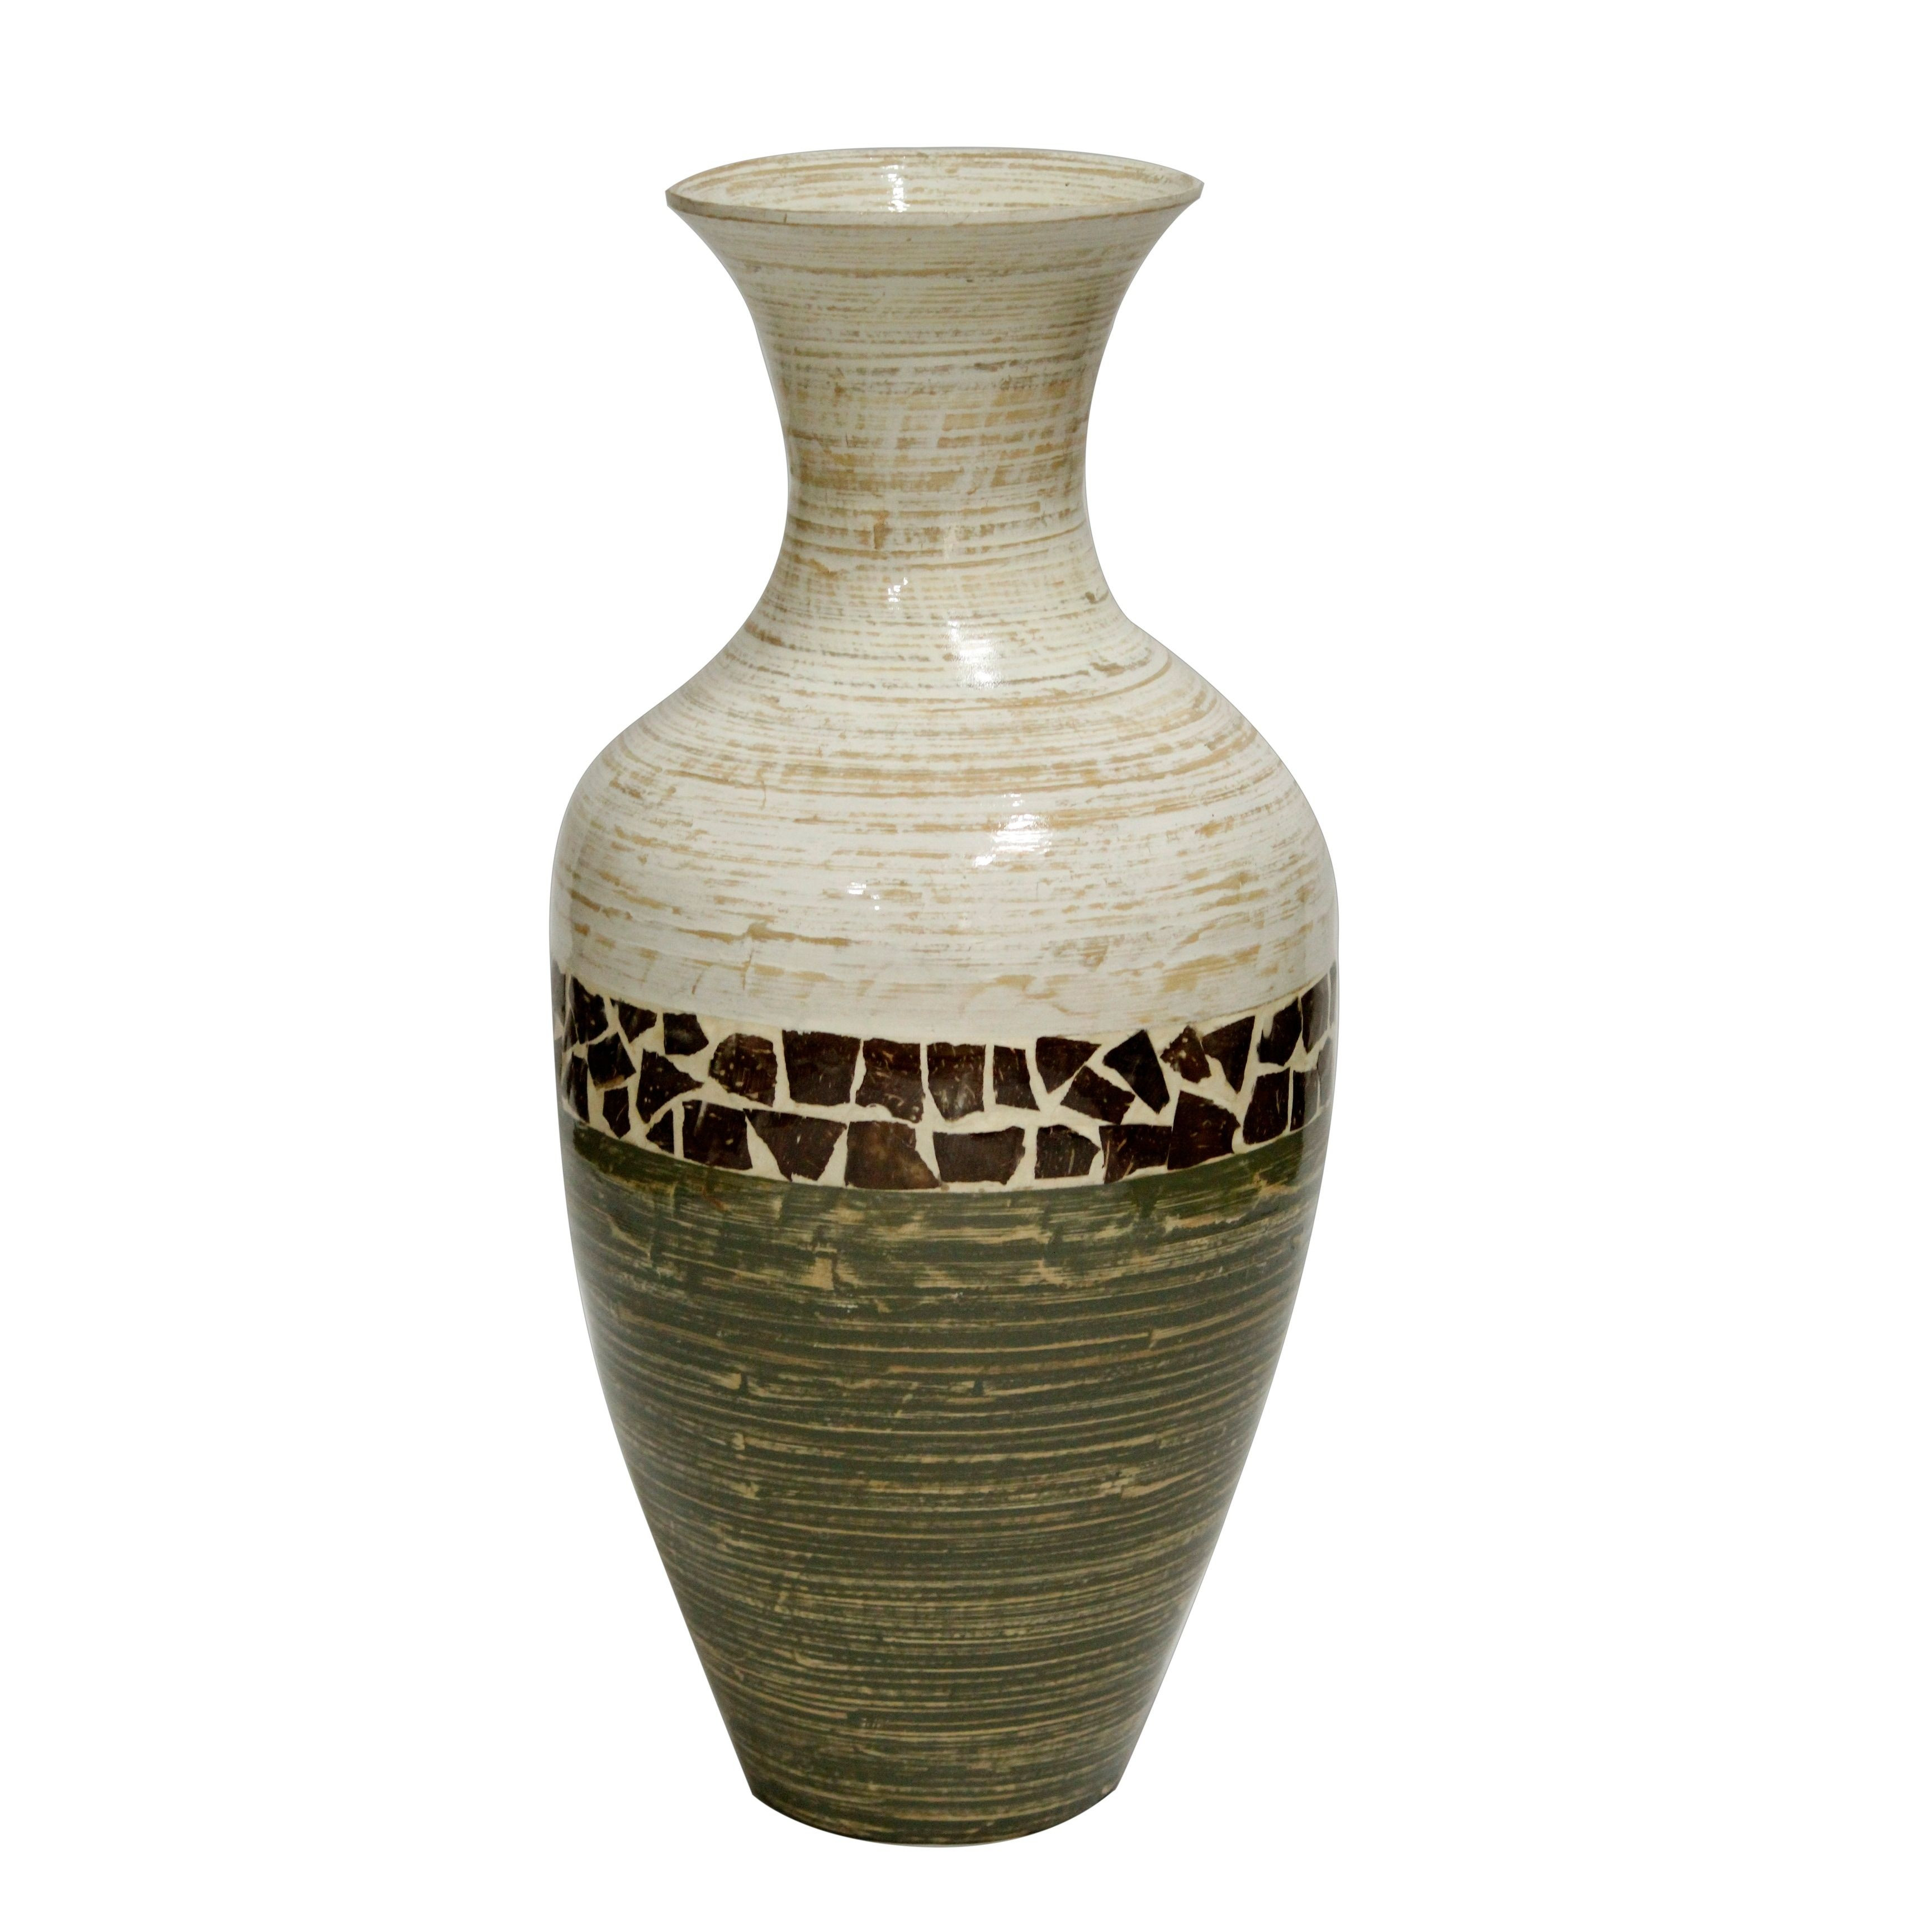 pier 1 floor vase of terra cotta floor vase within terry 25 spun bamboo floor vase white and green w coconut shell